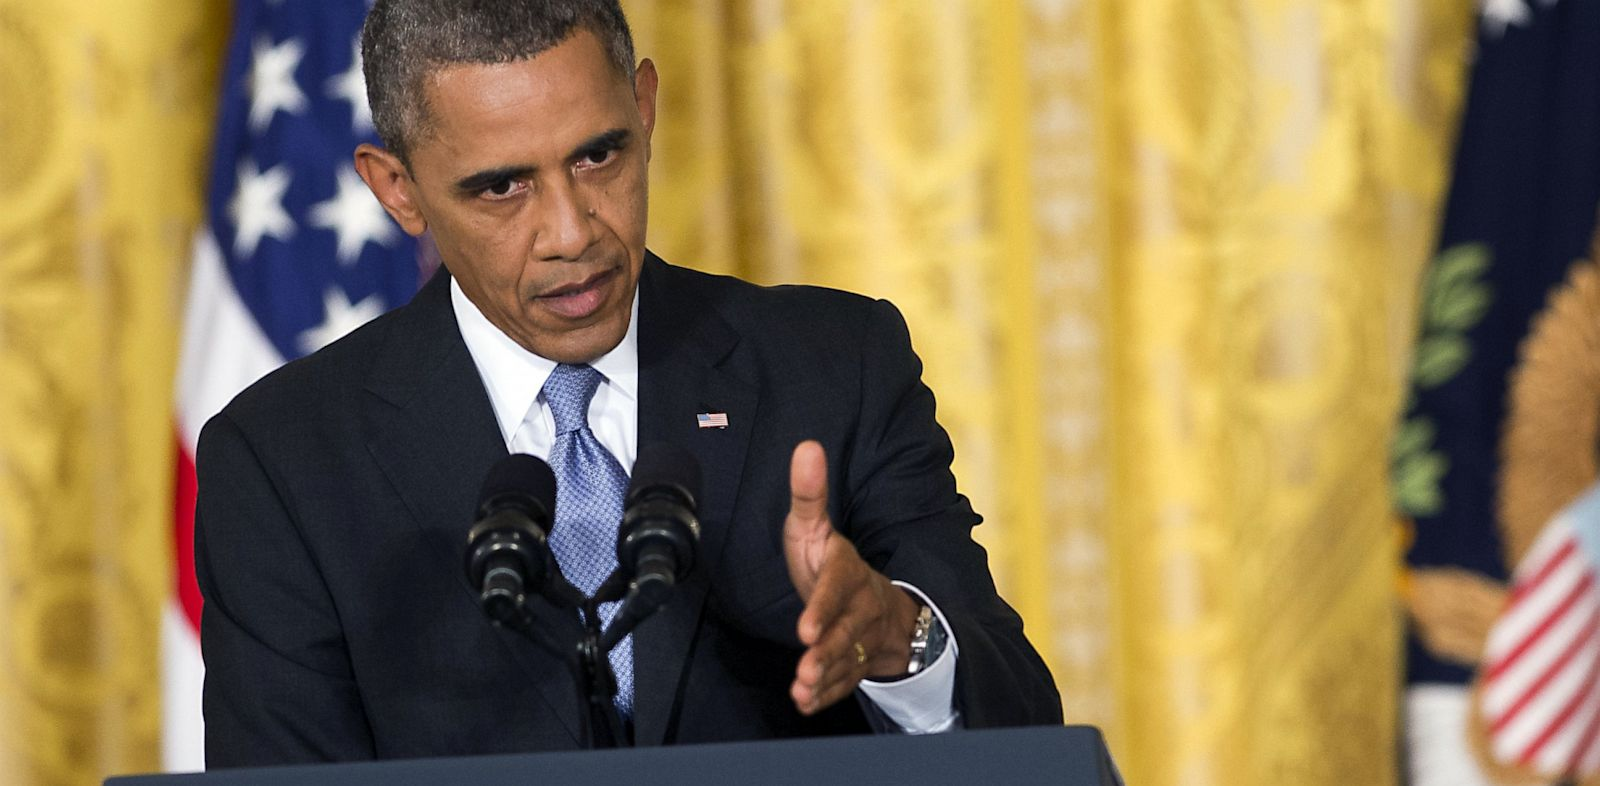 PHOTO: President Obama speaks during news conference